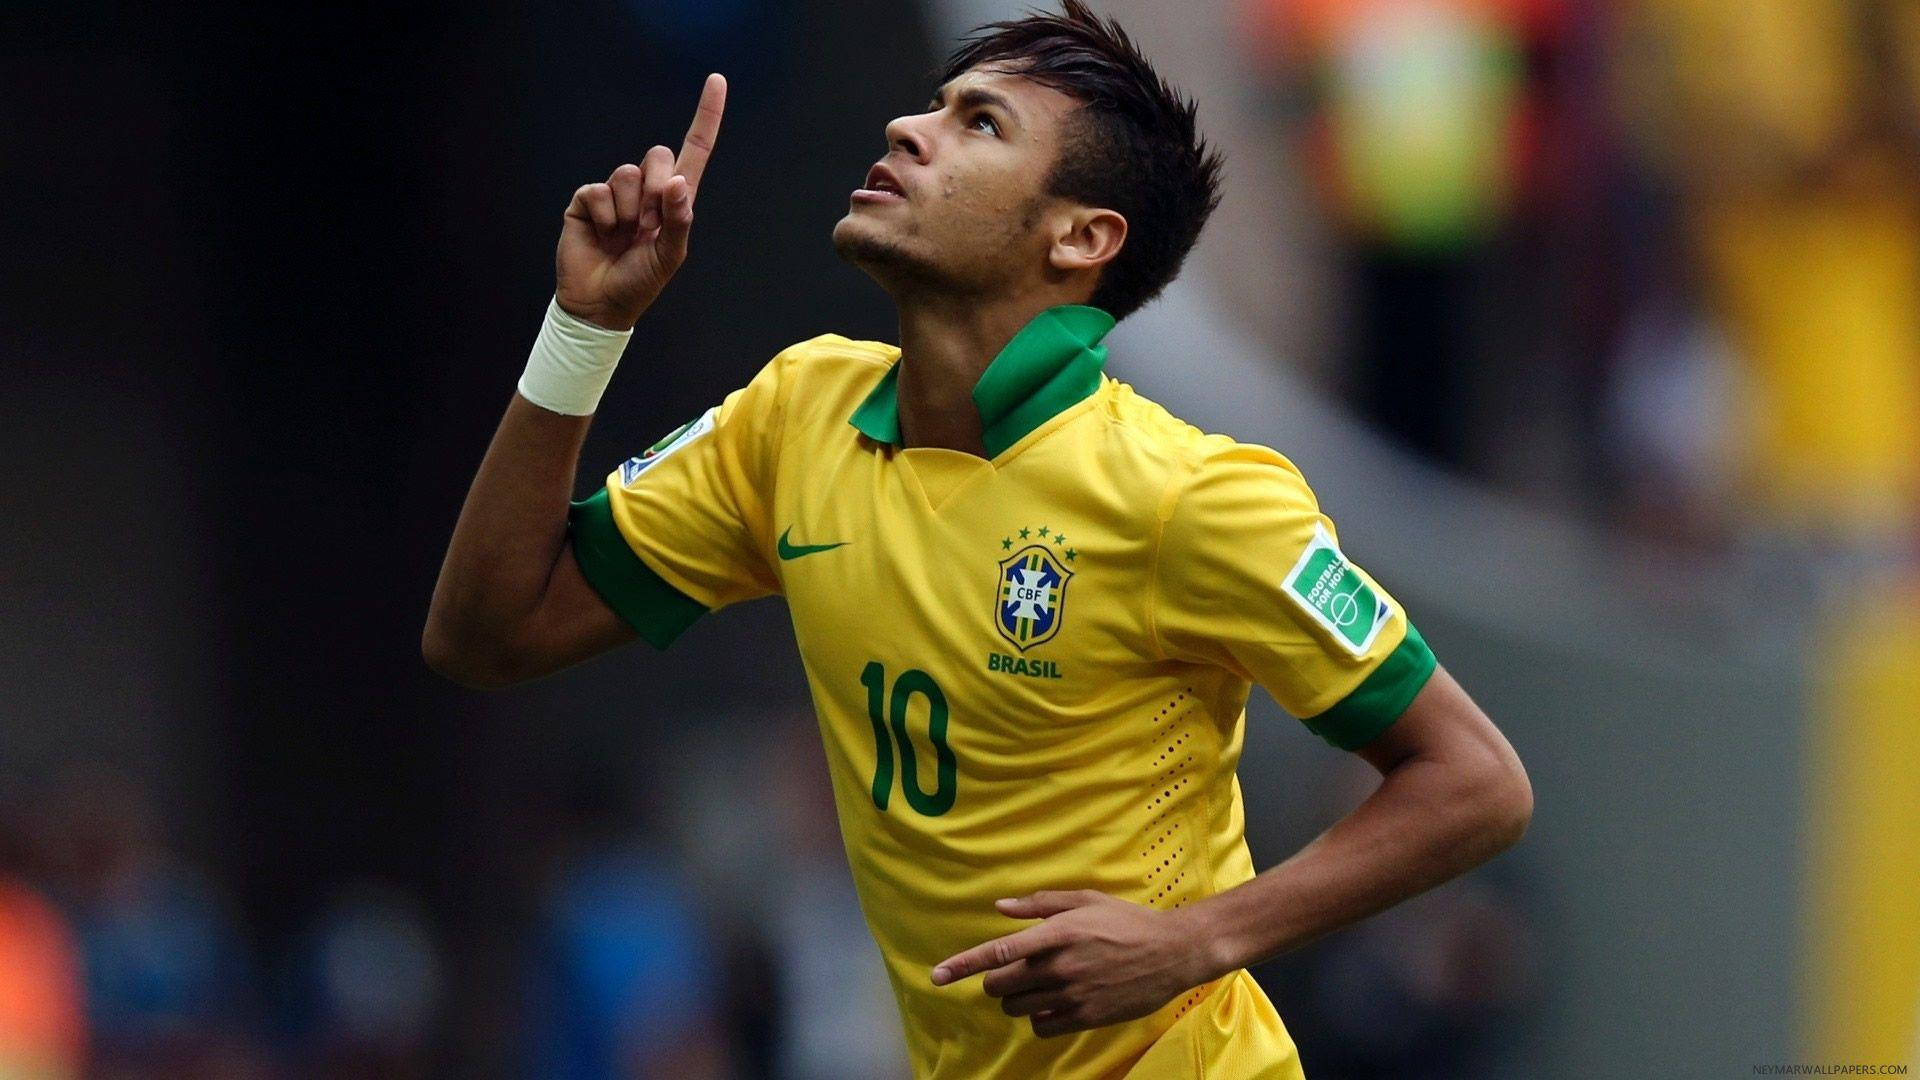 Neymar in Brazil yellow jersey wallpaper - Neymar Wallpapers